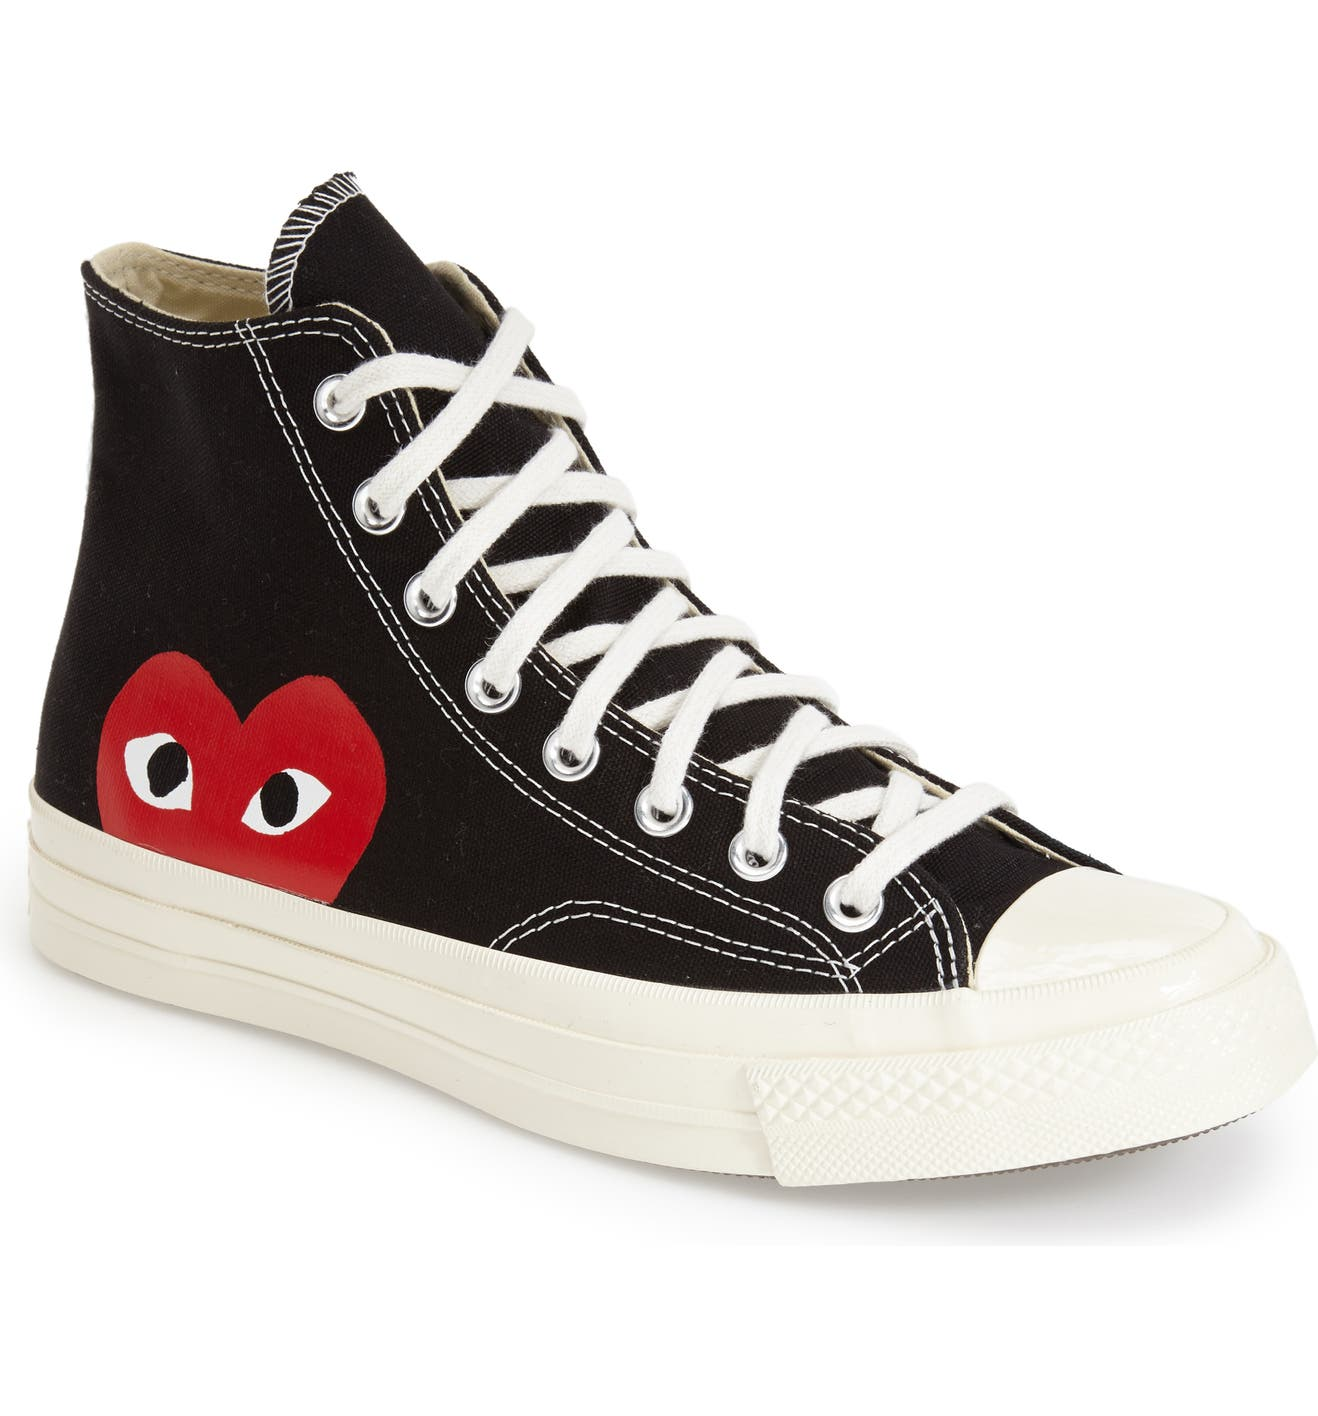 0602e36da4be Comme des Garçons PLAY x Converse Chuck Taylor® Hidden Heart High Top  Sneaker (Men)